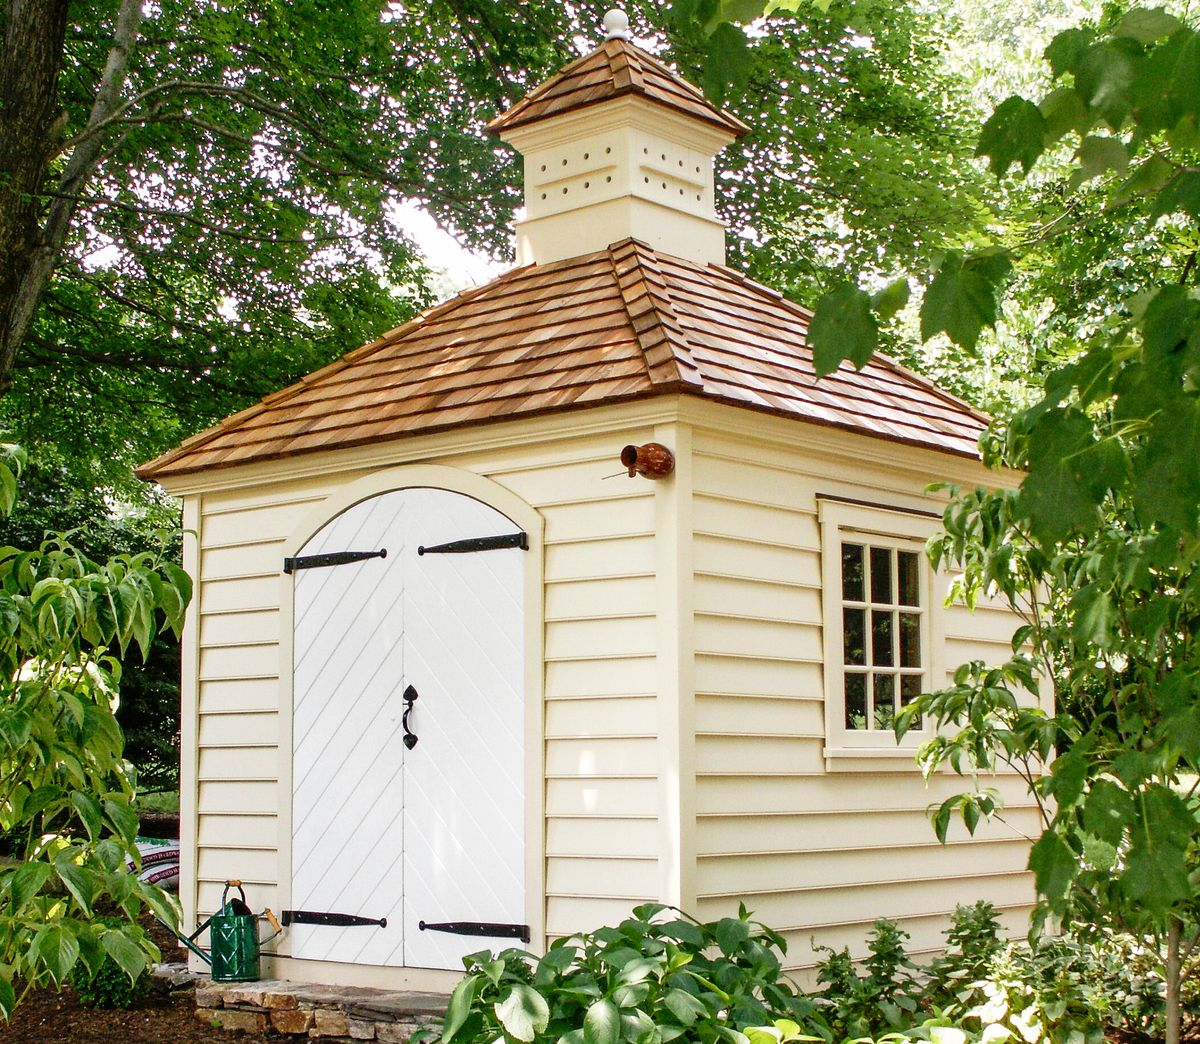 Garden Shed With Hip Roof And Pyramidal Cap